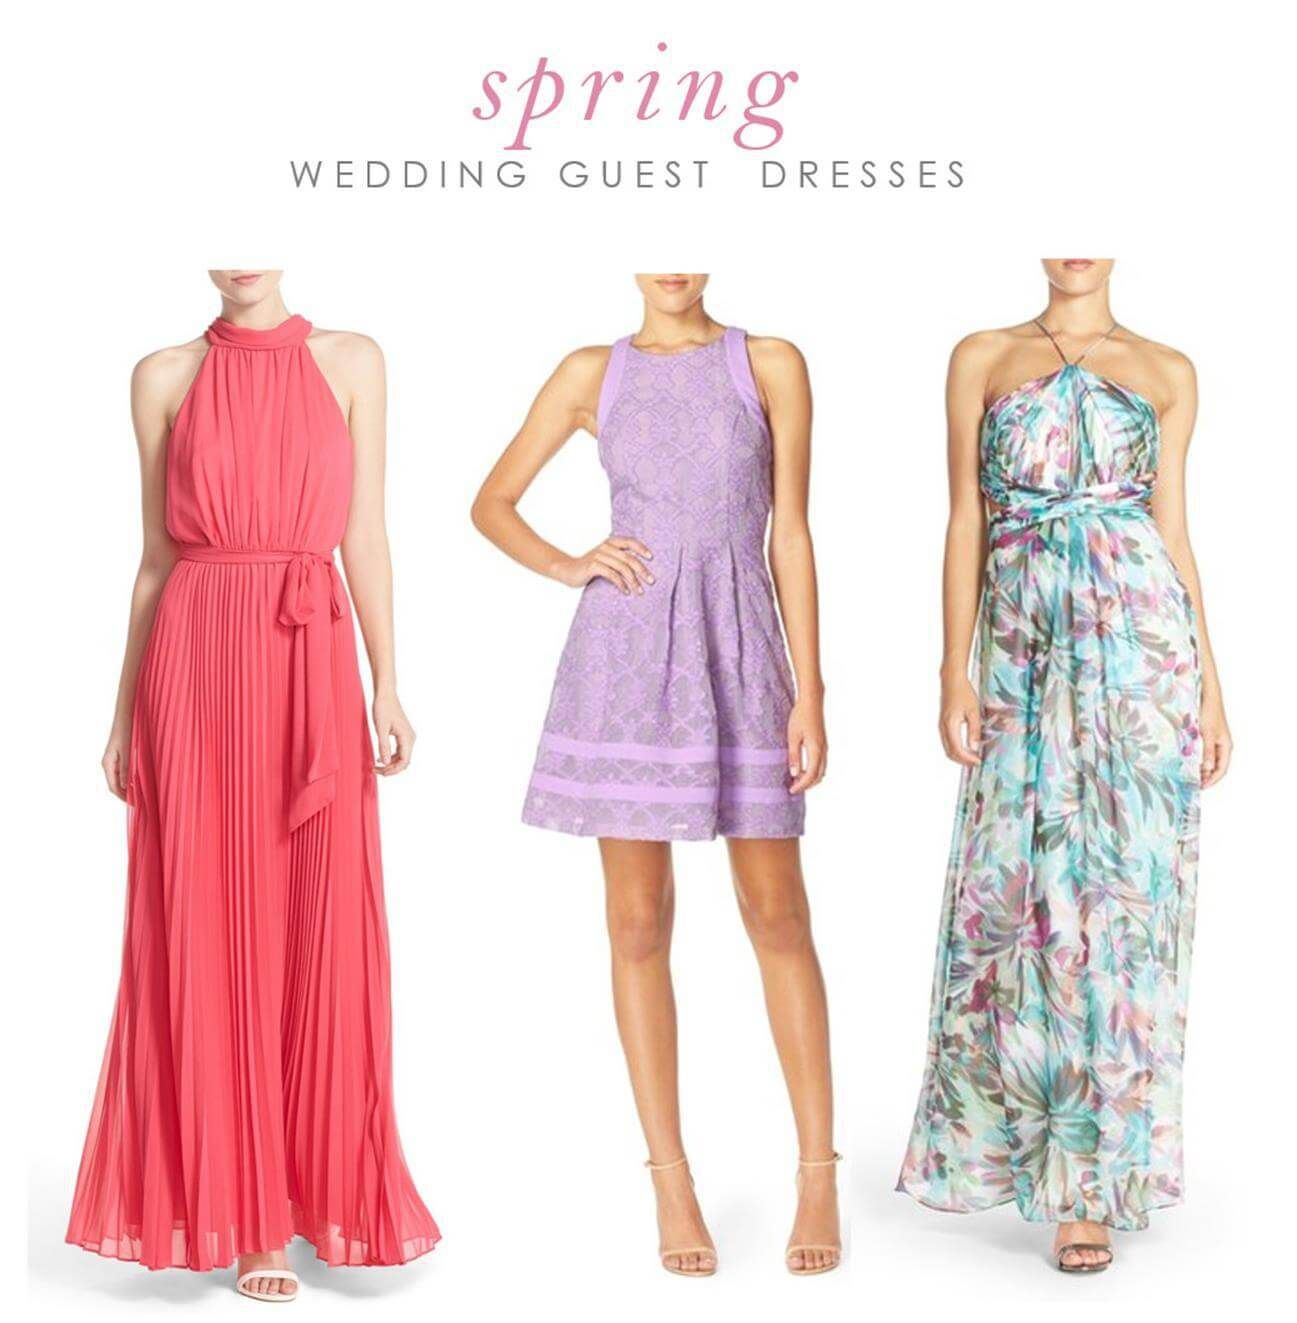 Guest of wedding dresses spring   Beautiful Spring Wedding Dresses For Guests  Spring weddings